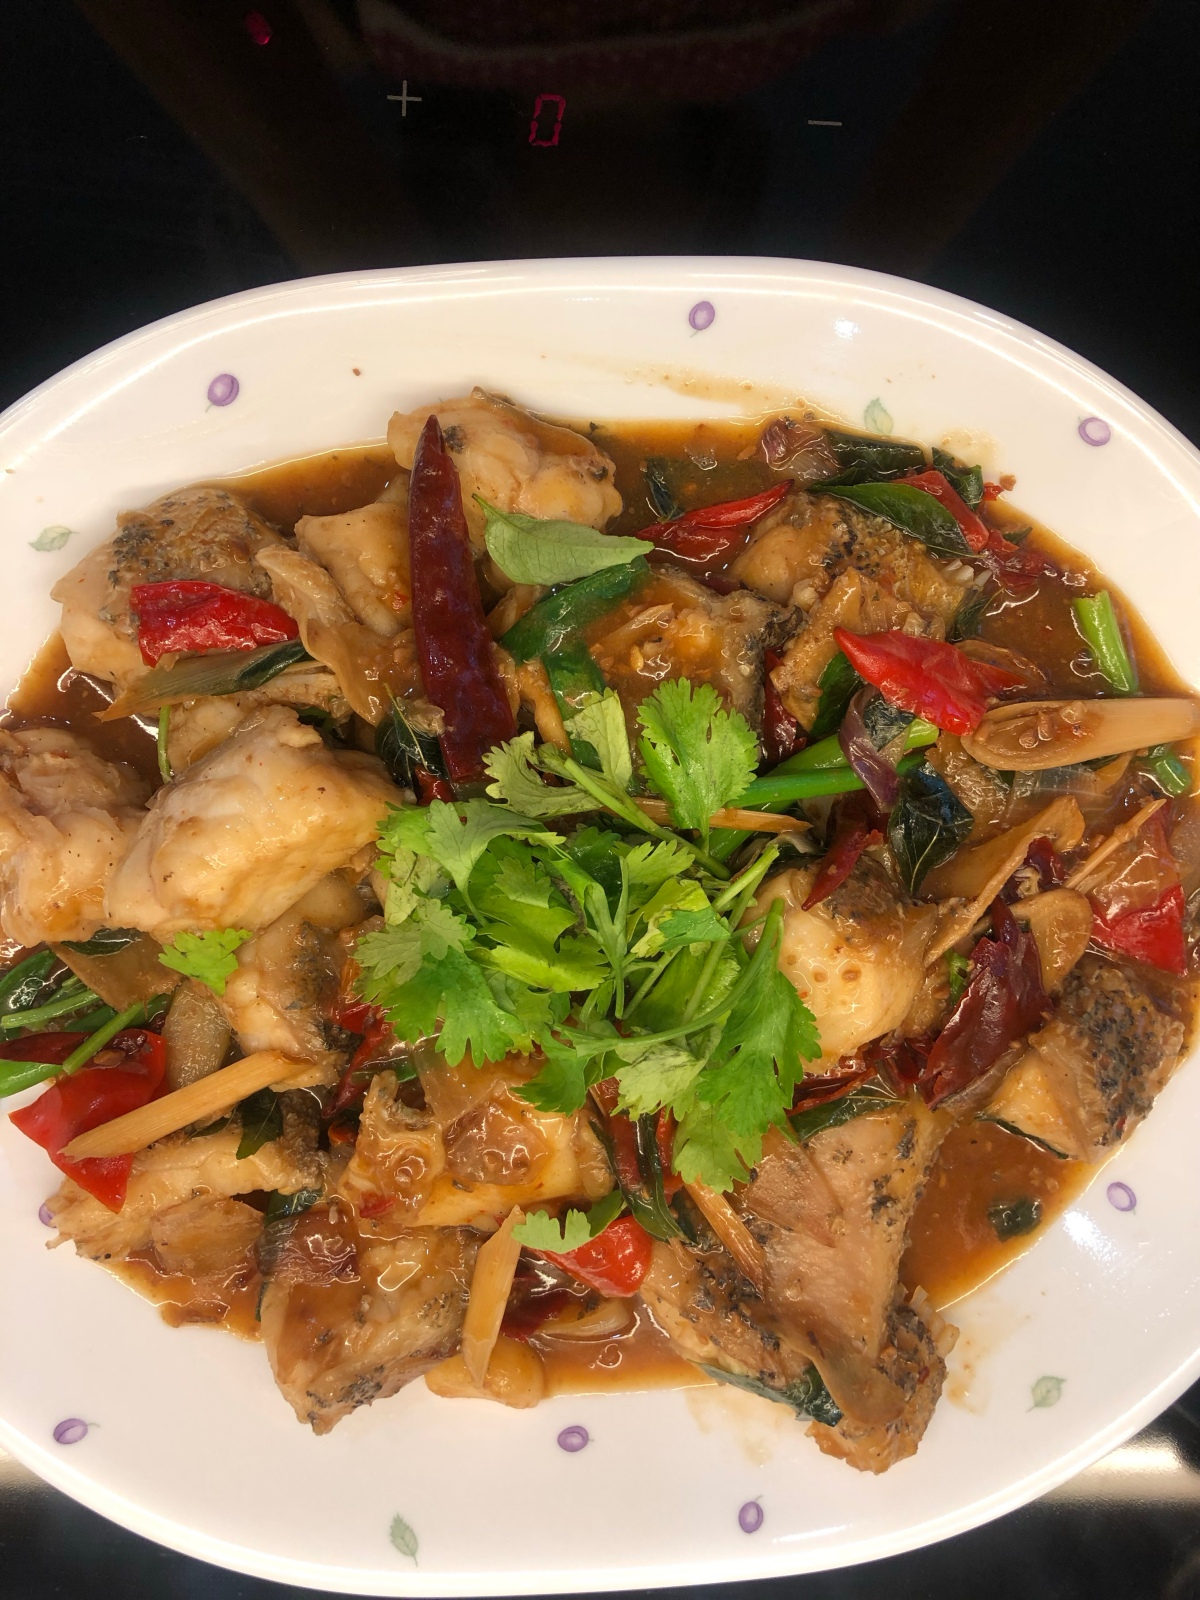 Spicy stir-fry fish (紅燒炒魚)